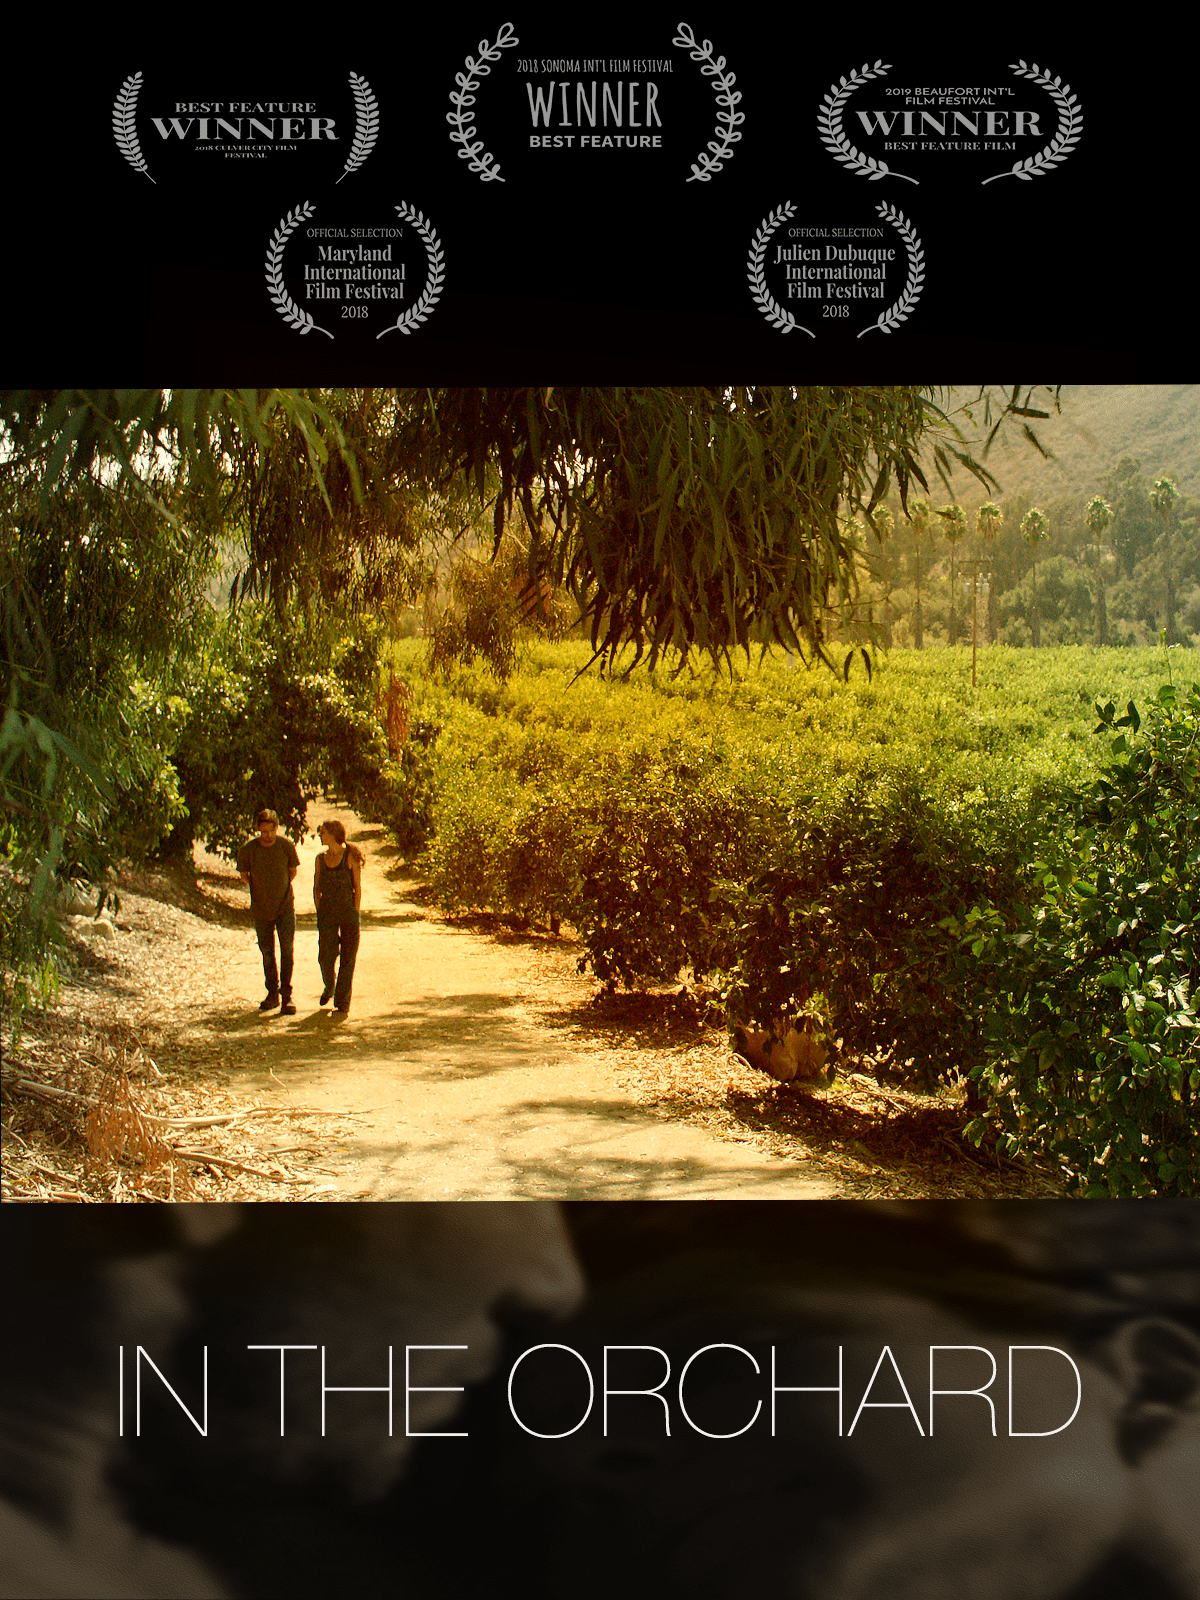 In the Orchard is an independent film that has won multiple awards at film festivals including Sonoma International film festival, Culver City Film Festival and Beaufort Film Festival #film #independentfilm. It is the story of a woman who has lost her family in an accident and befriends a homeless vet.